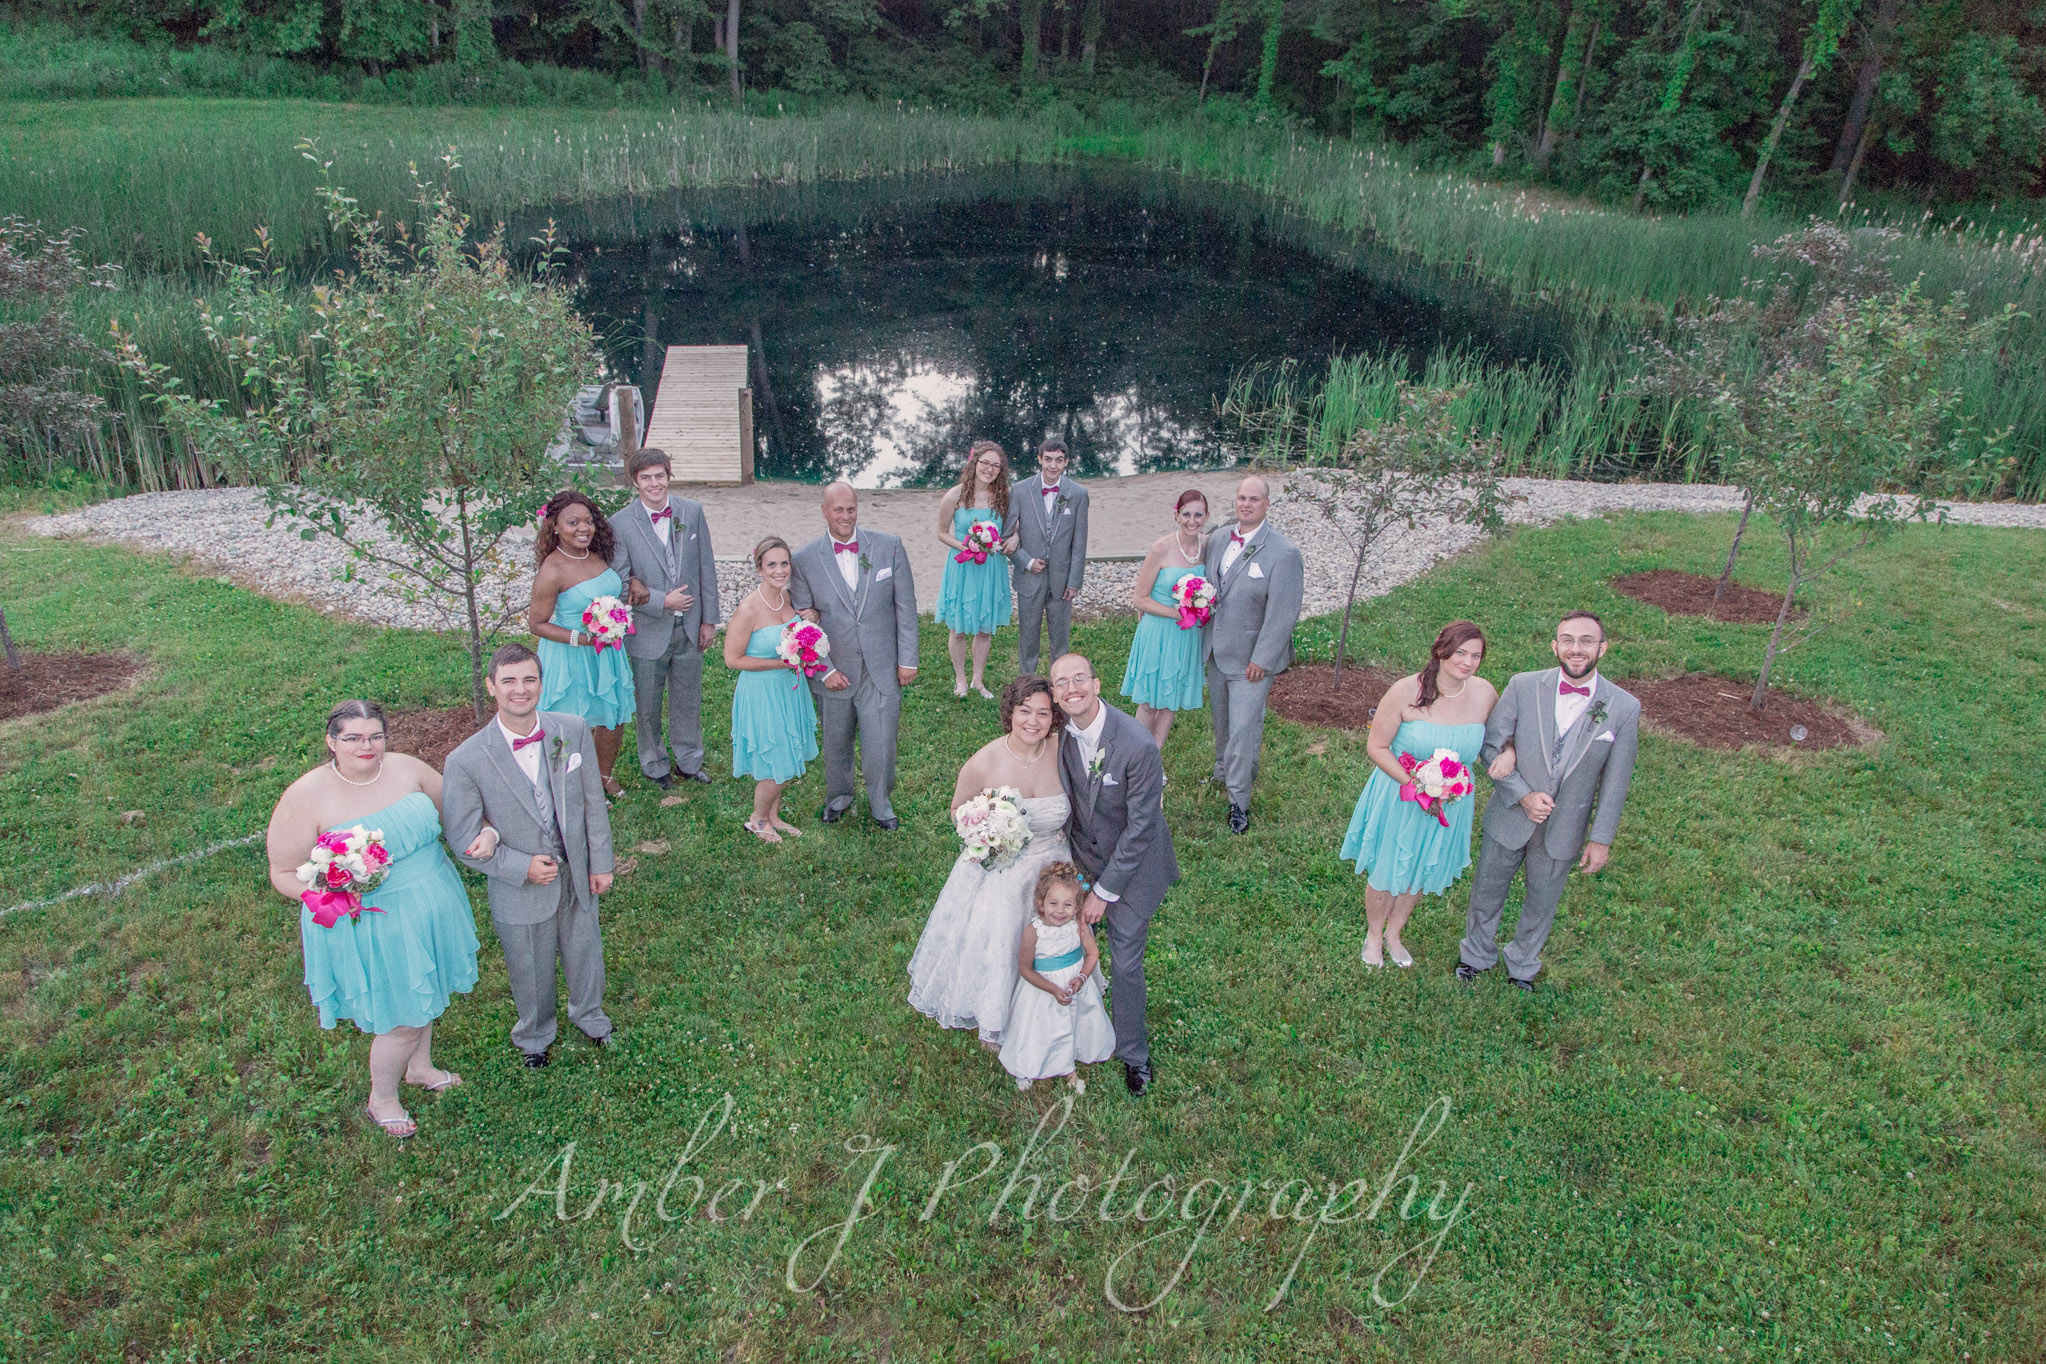 Sommer_Wedding_AmberJphotography_26.jpg